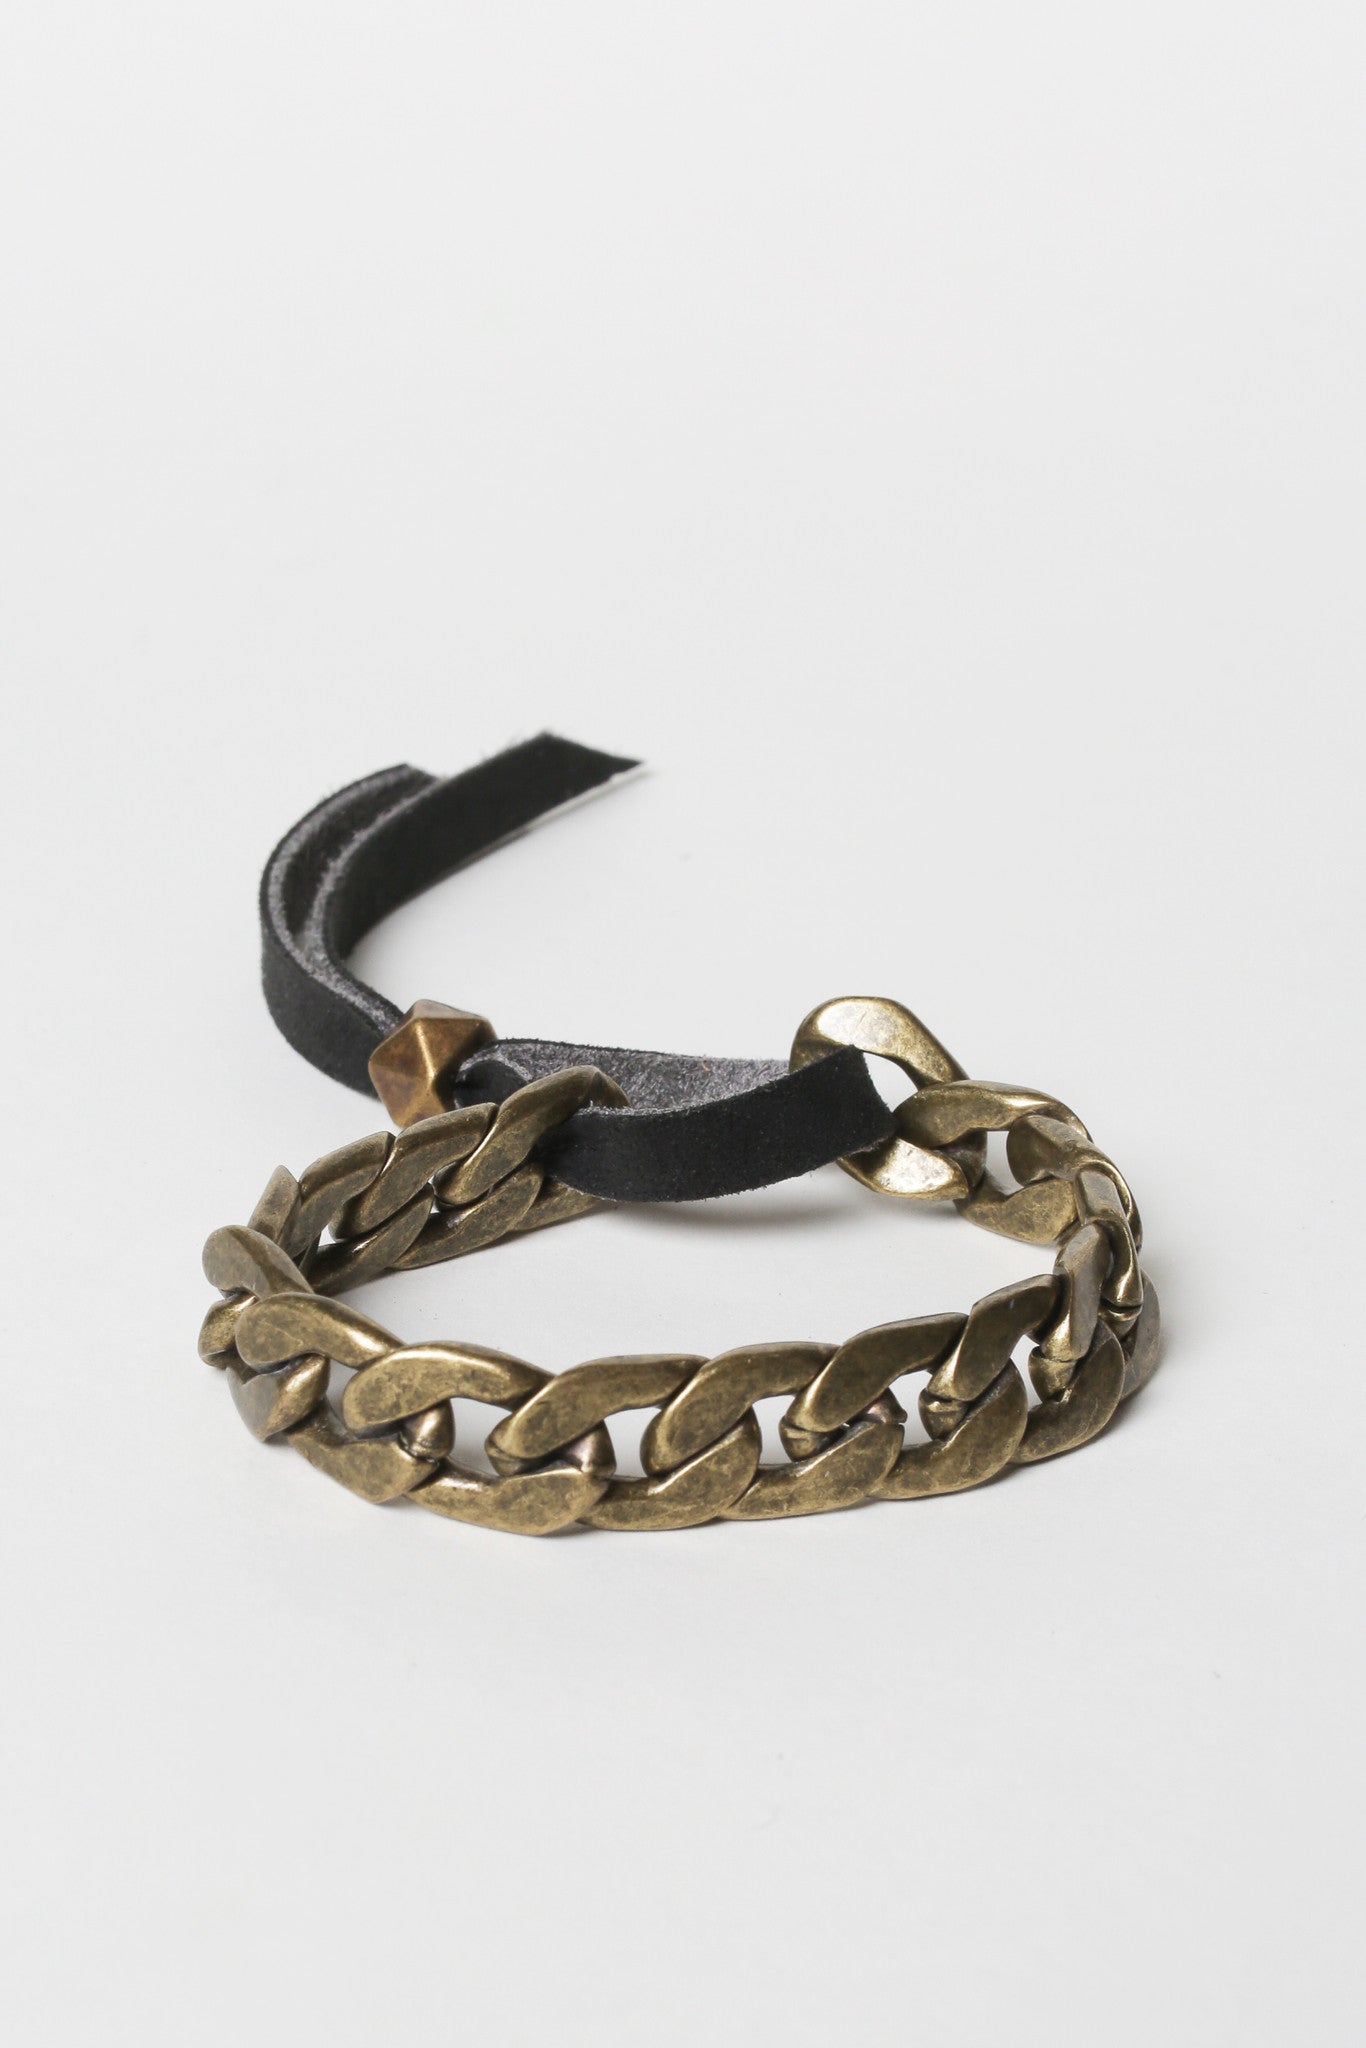 *NEW* The ALLIYAH Chain and Tie Bracelet - JAKIMAC  - 1